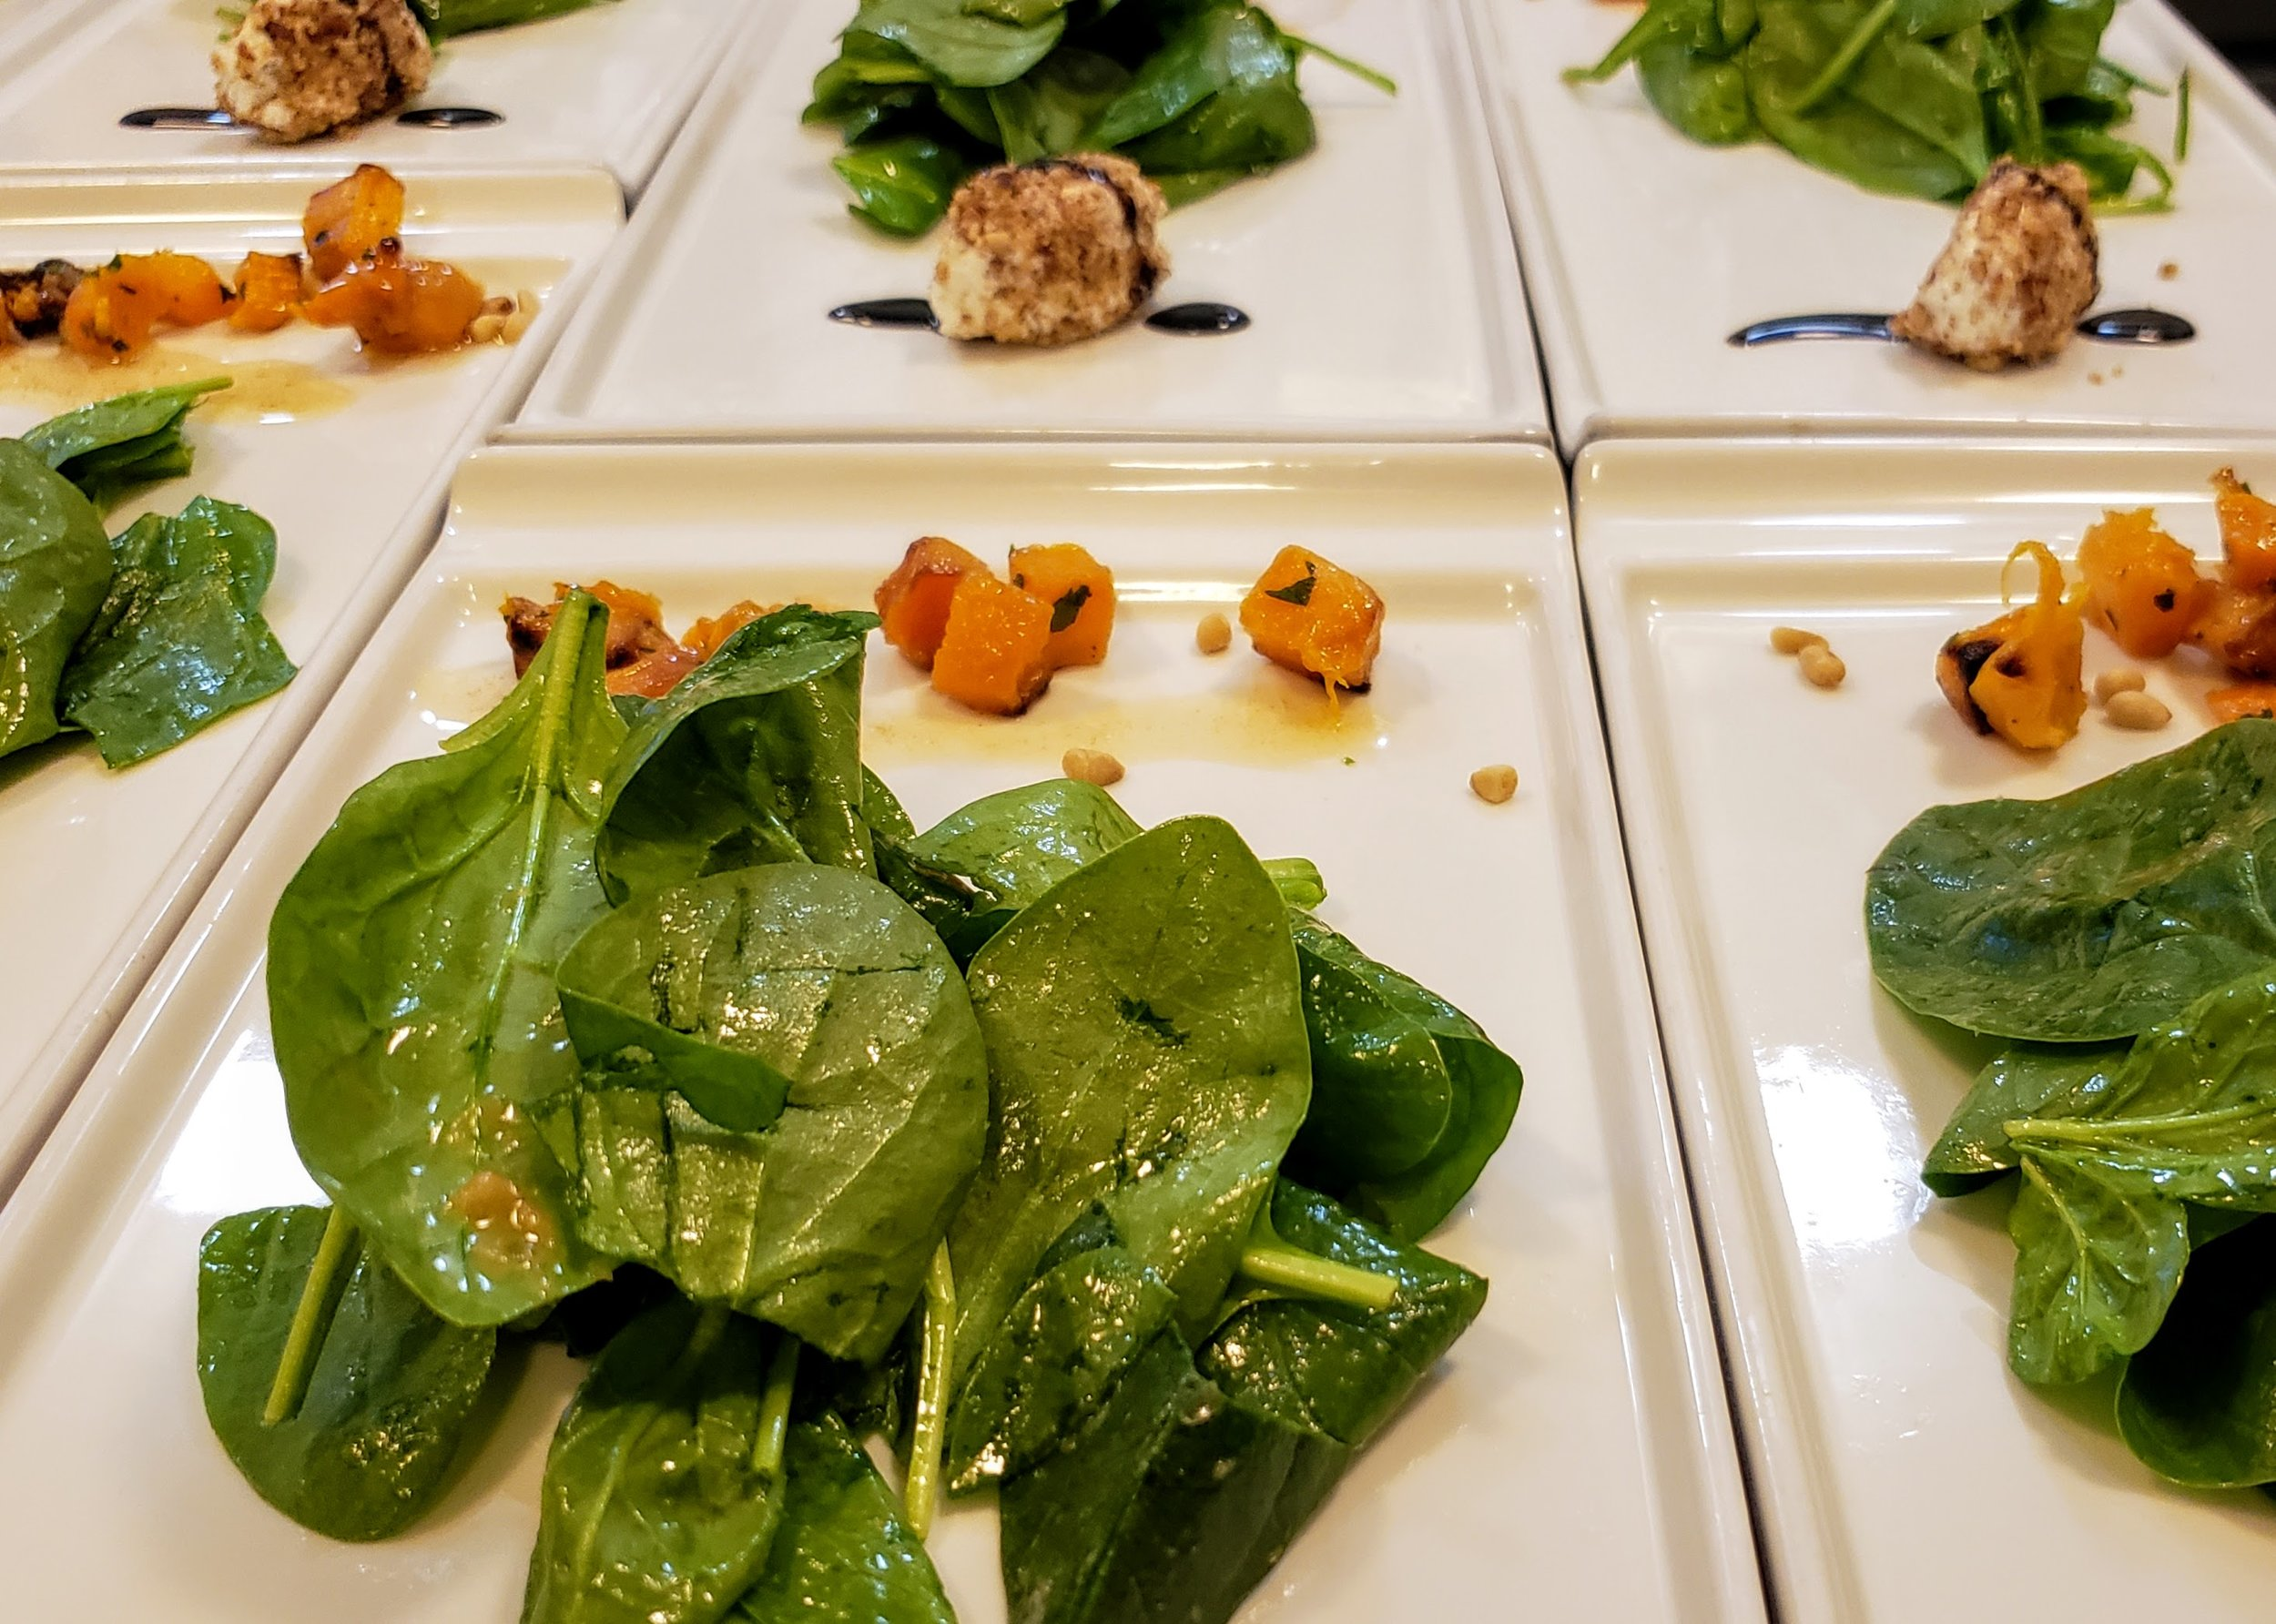 Baby Spinach & Roasted Squash Salad  Pecan Crusted Chevre, Brown Butter Pine Nuts